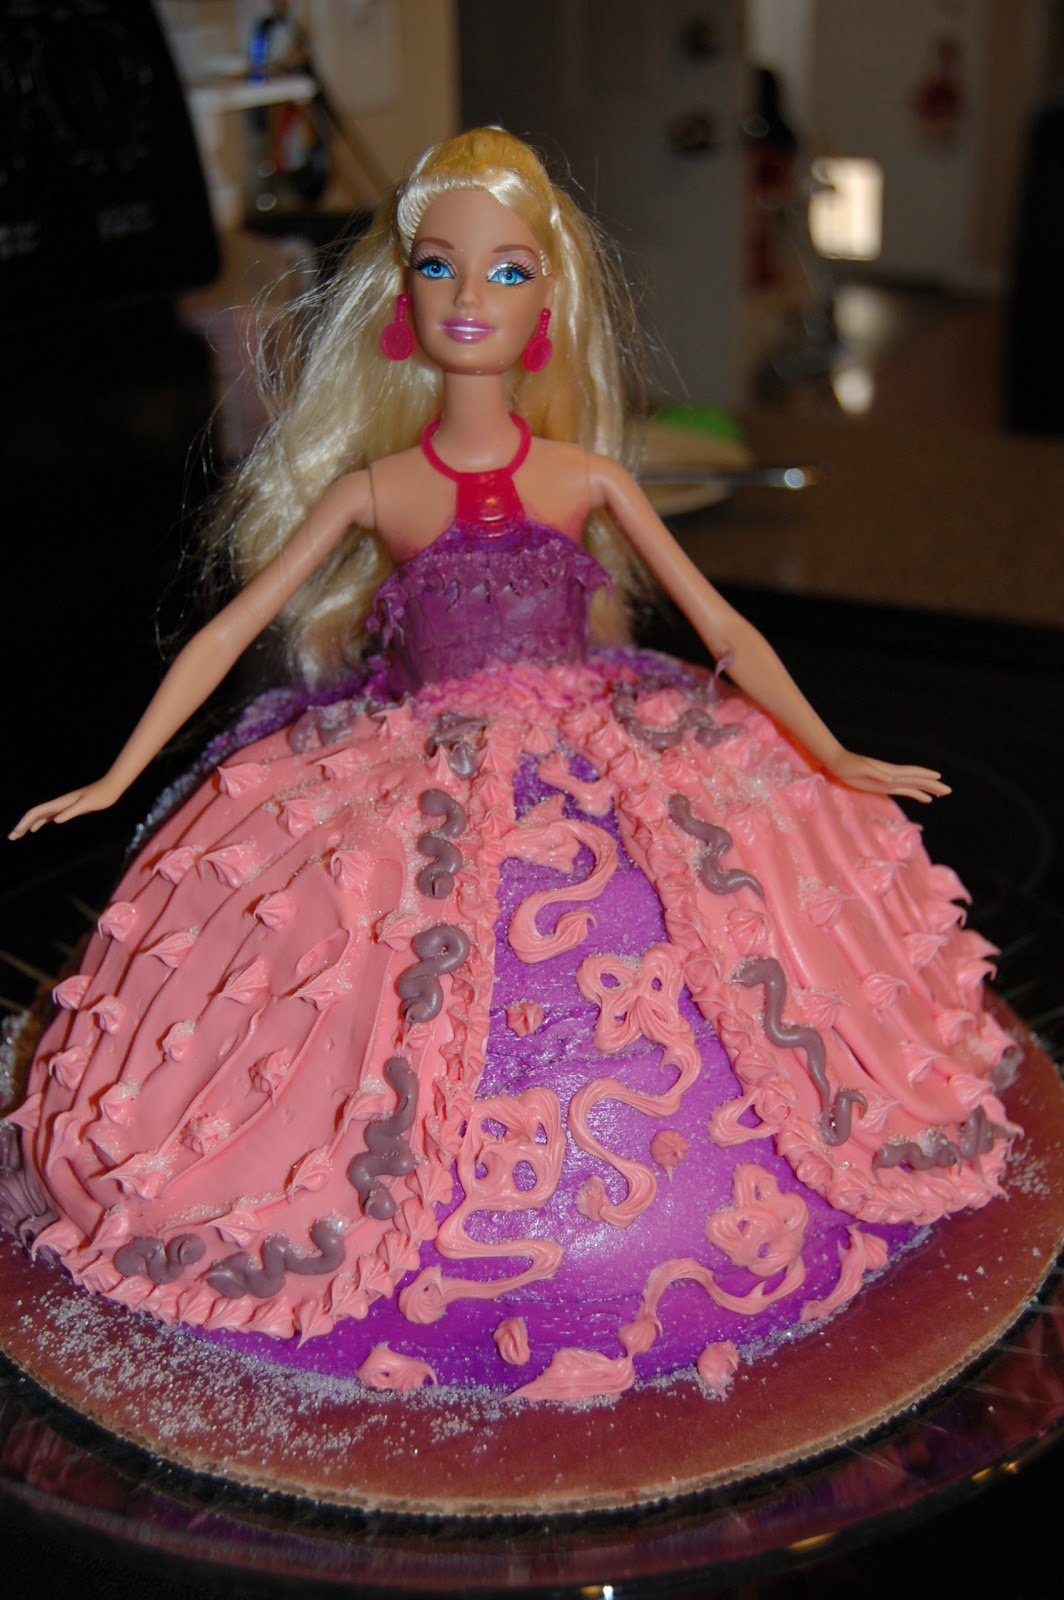 Cake Decorating Ideas Barbie : Barbie Cake Decorations